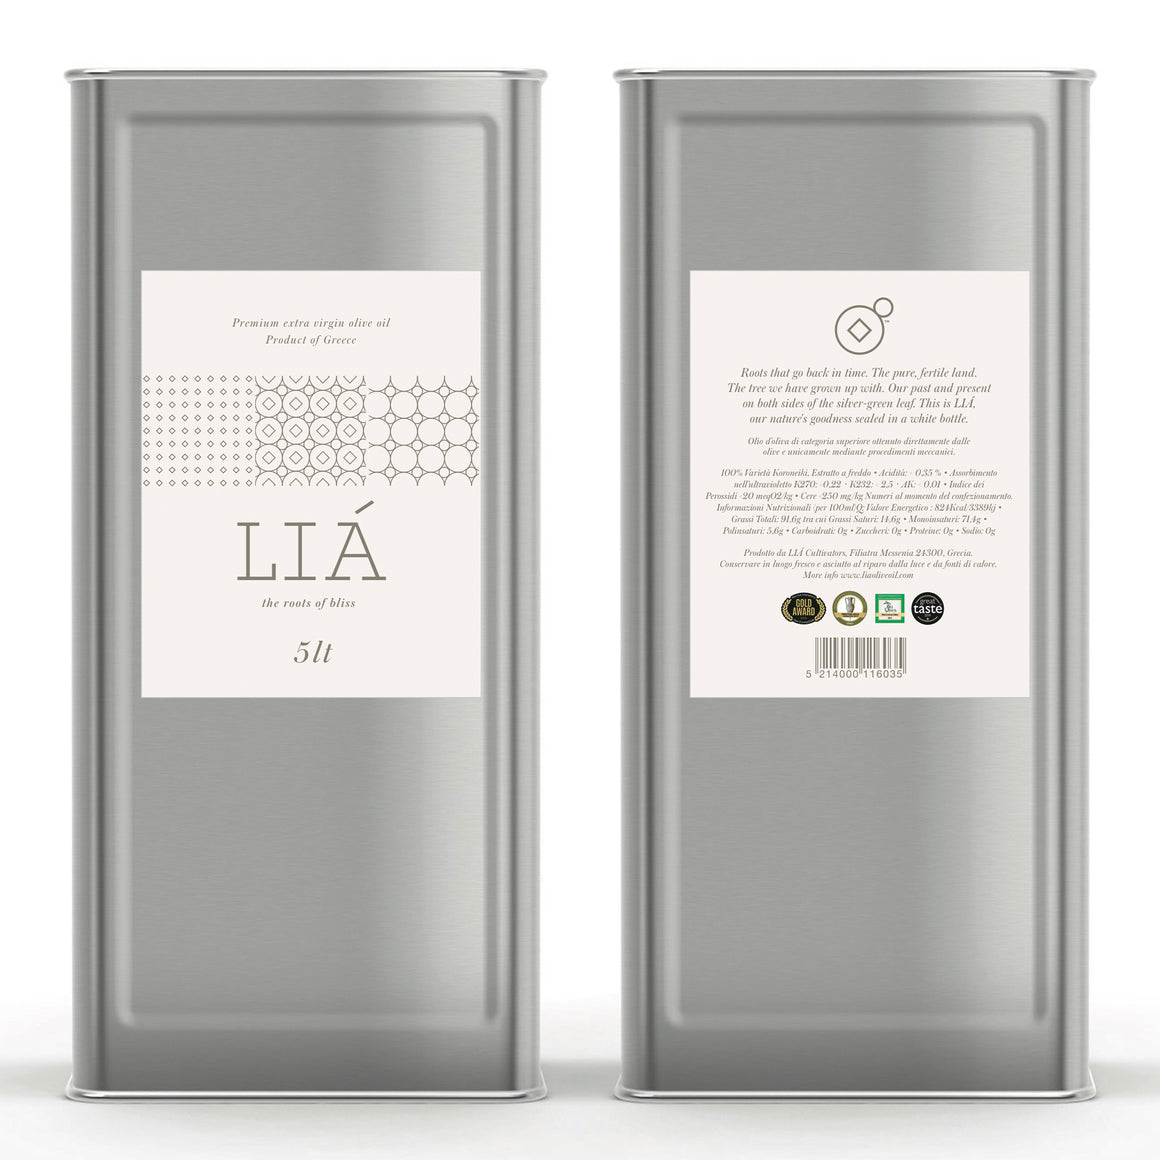 LIÁ Premium Greek Extra Virgin Olive Oil - 5L